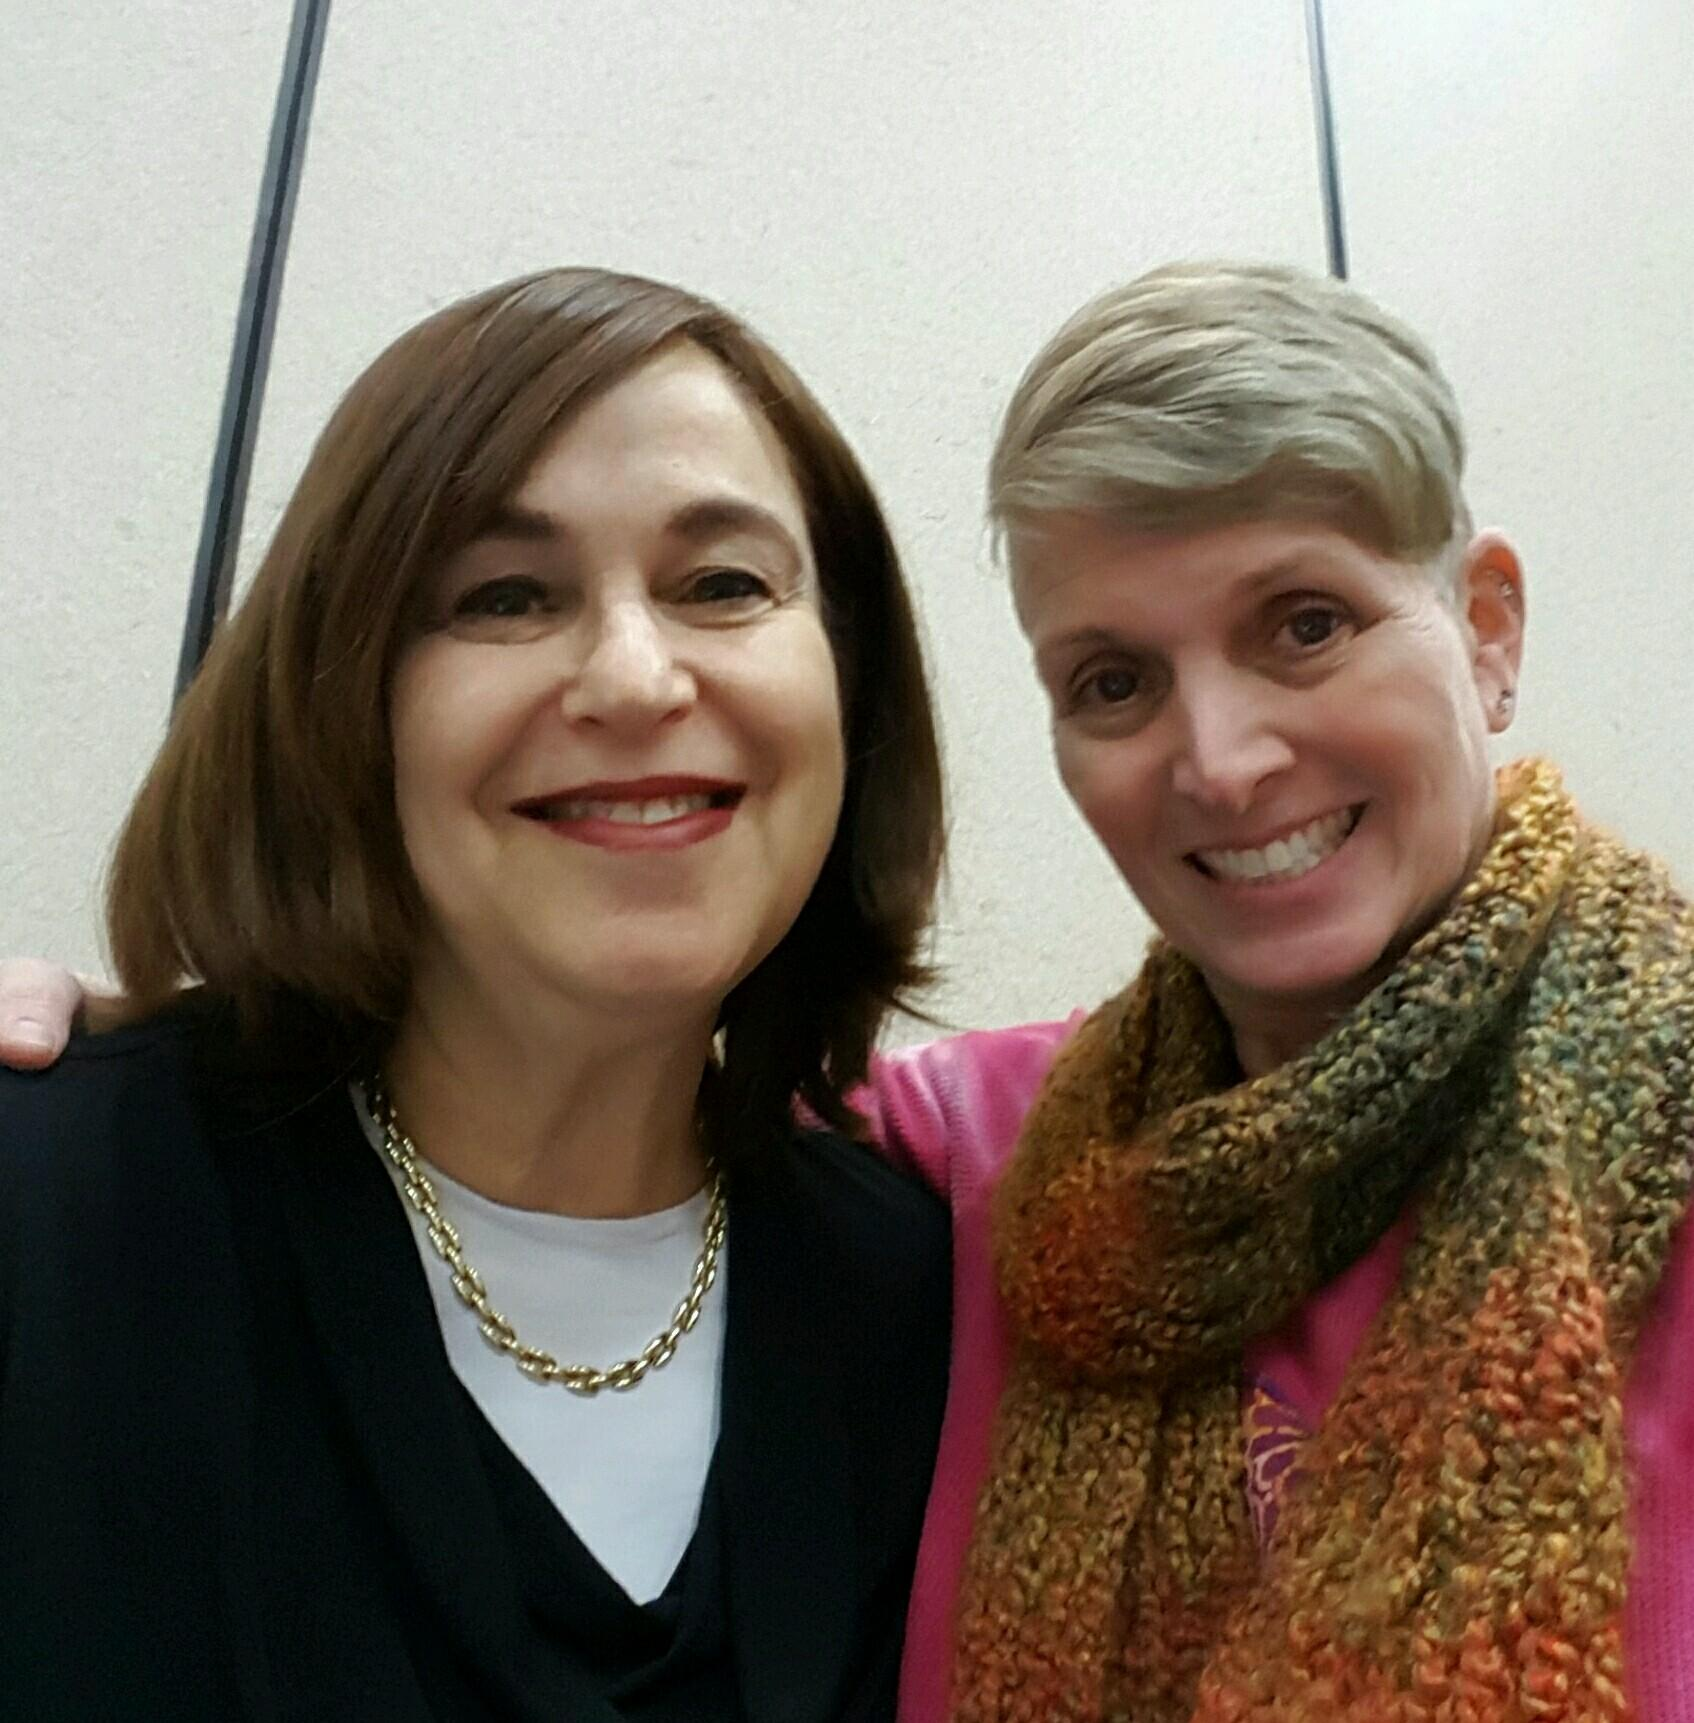 With my dear friend Sharon, who took the photographs at this event  Thank you so much, Sharon